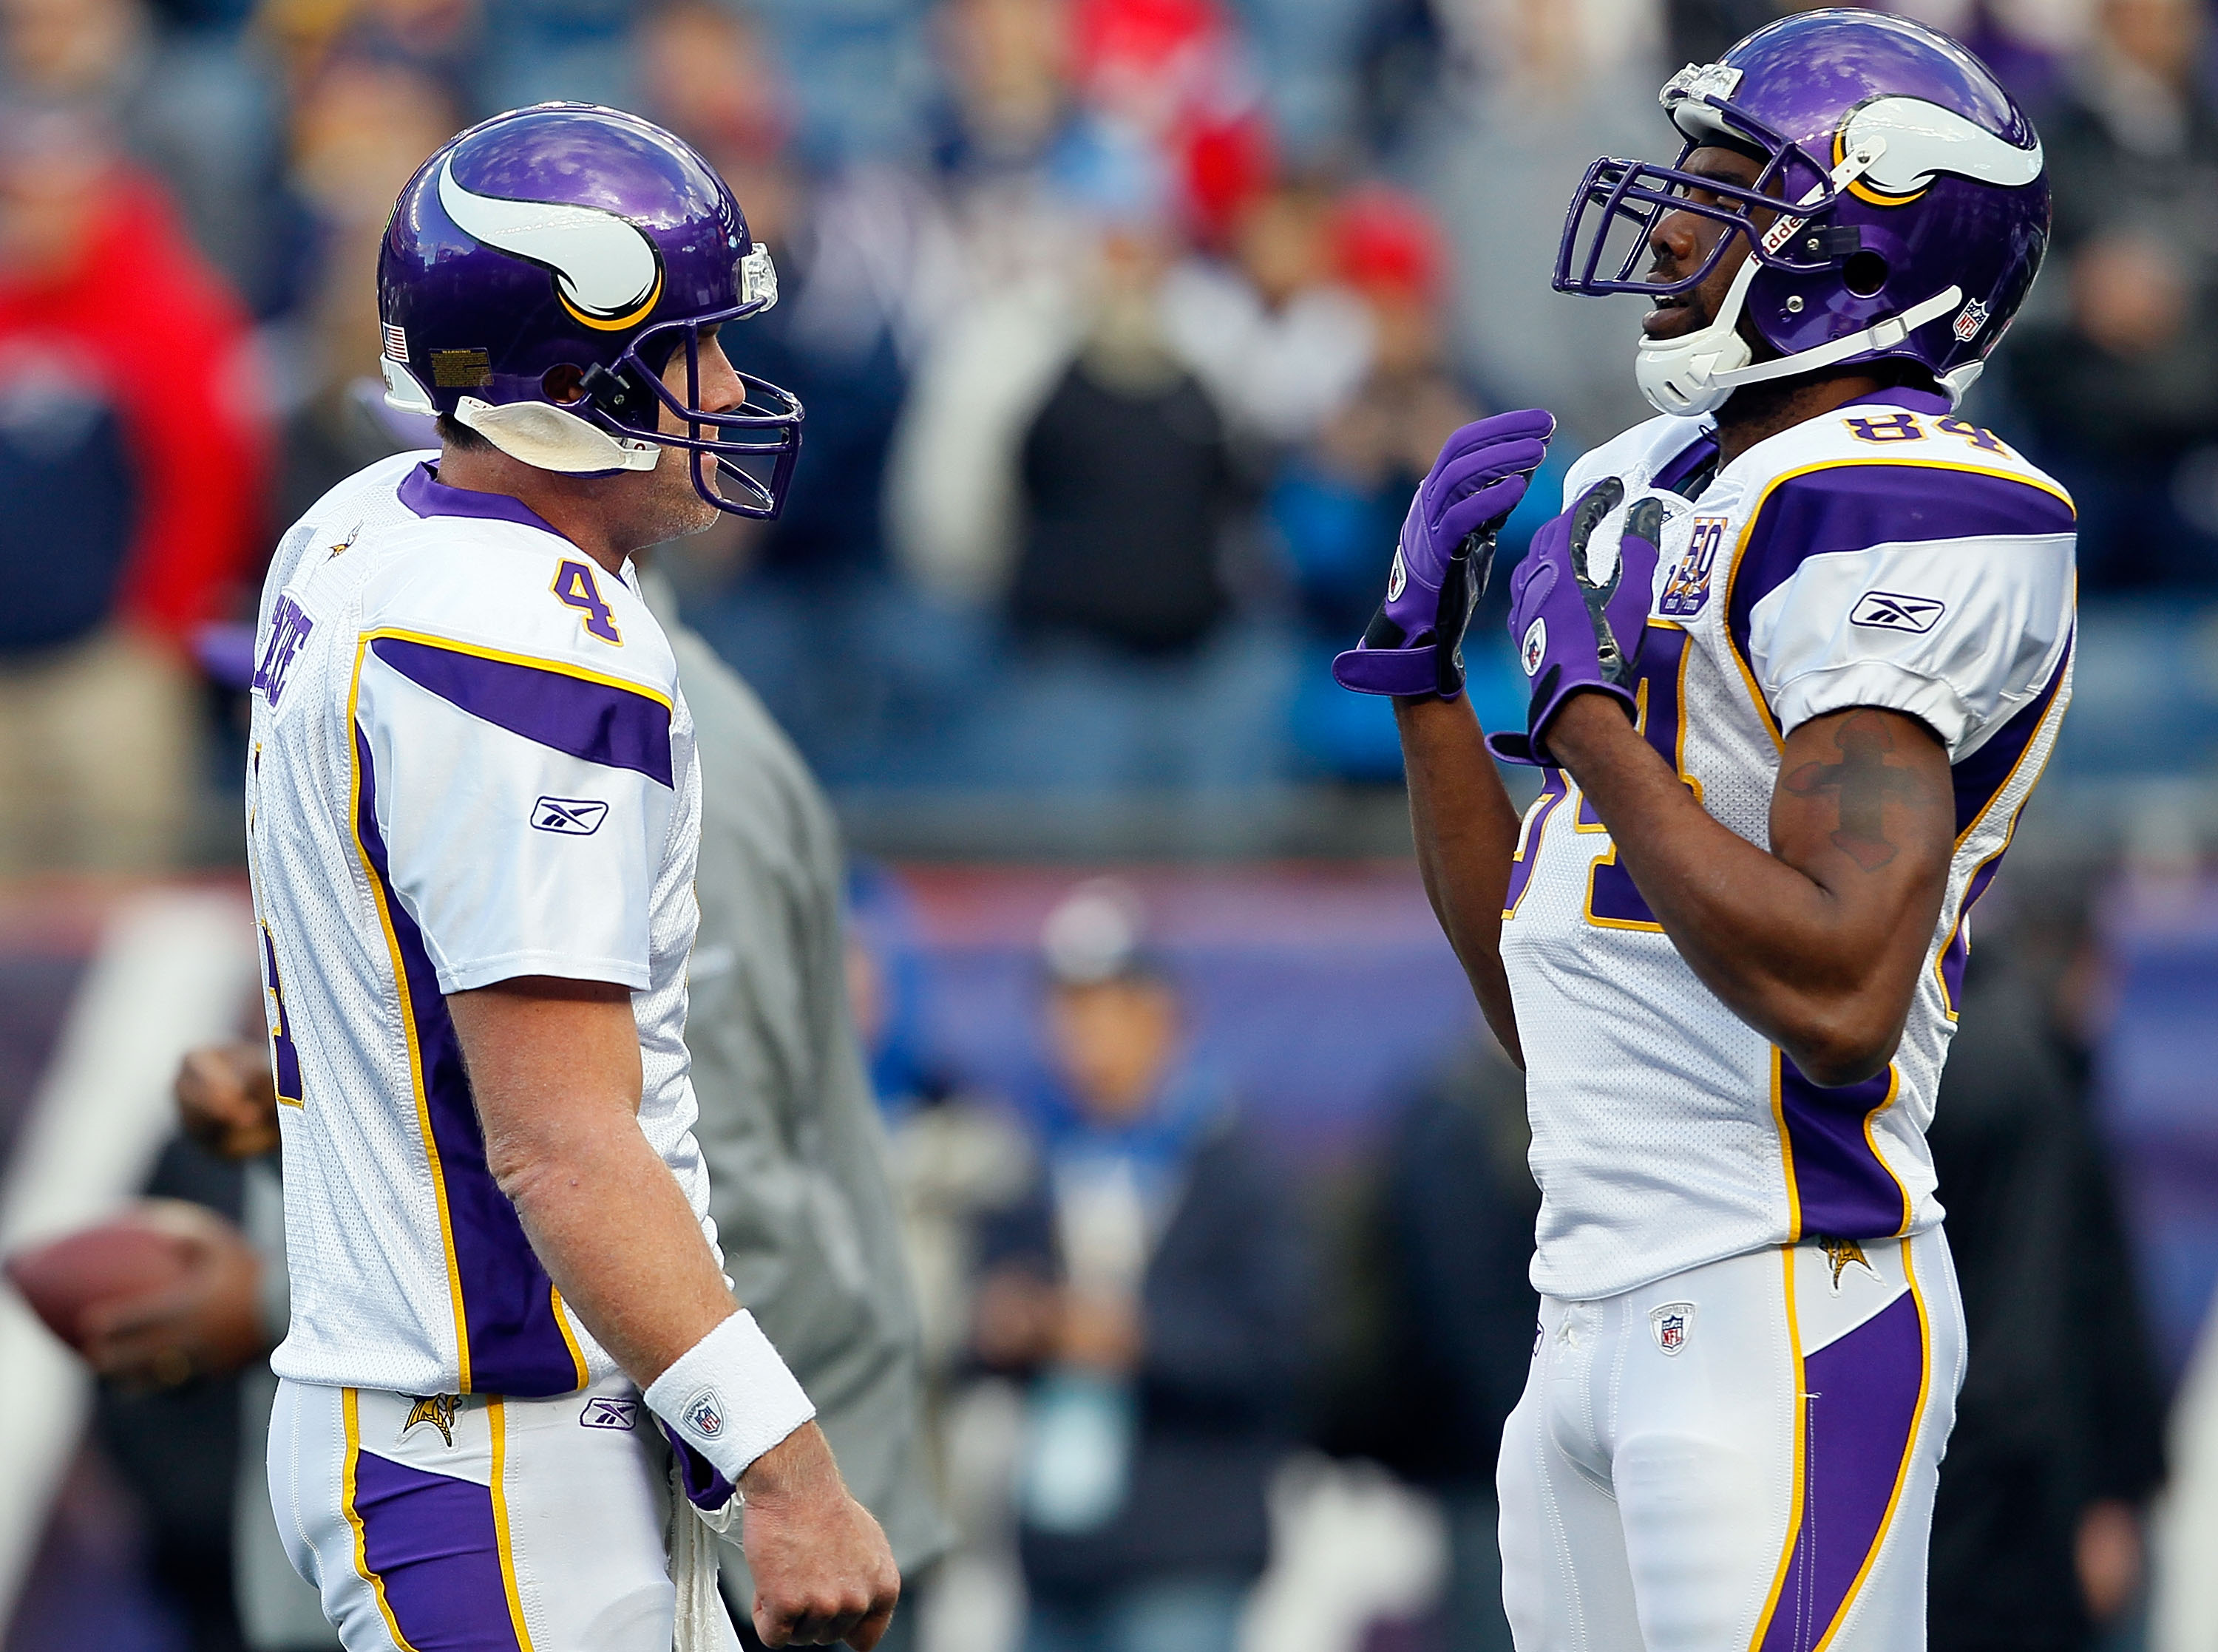 FOXBORO, MA - OCTOBER 31:  Brett Favre #4 of the Minnesota Vikings interacts with teammate Randy Moss #84 before a game against the New England Patriots at Gillette Stadium on October 31, 2010 in Foxboro, Massachusetts. (Photo by Jim Rogash/Getty Images)